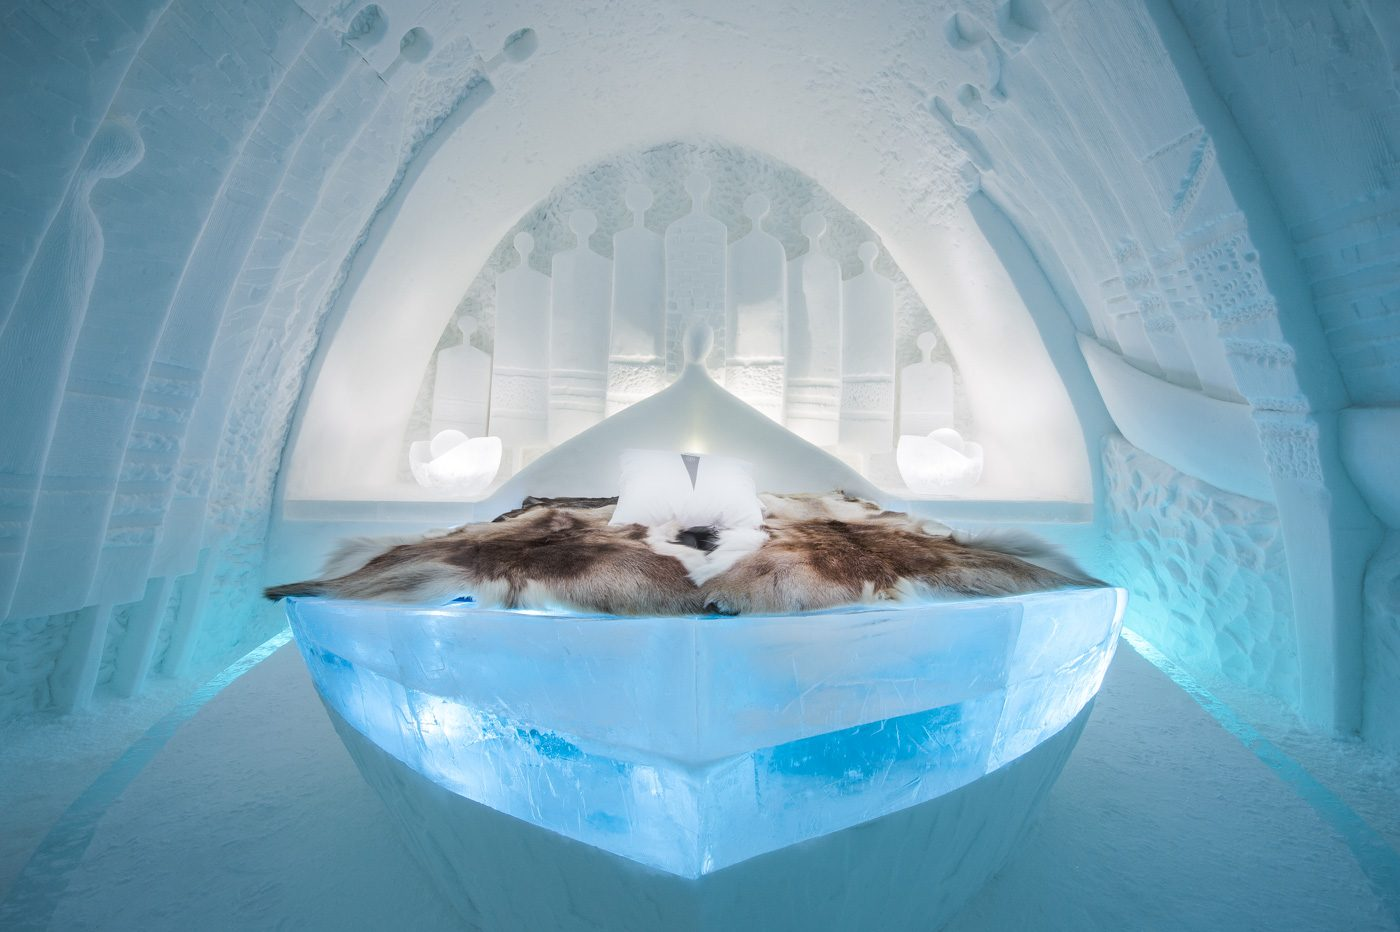 art-suite-daily-travellers-icehotel-28-1400x932-1.jpg